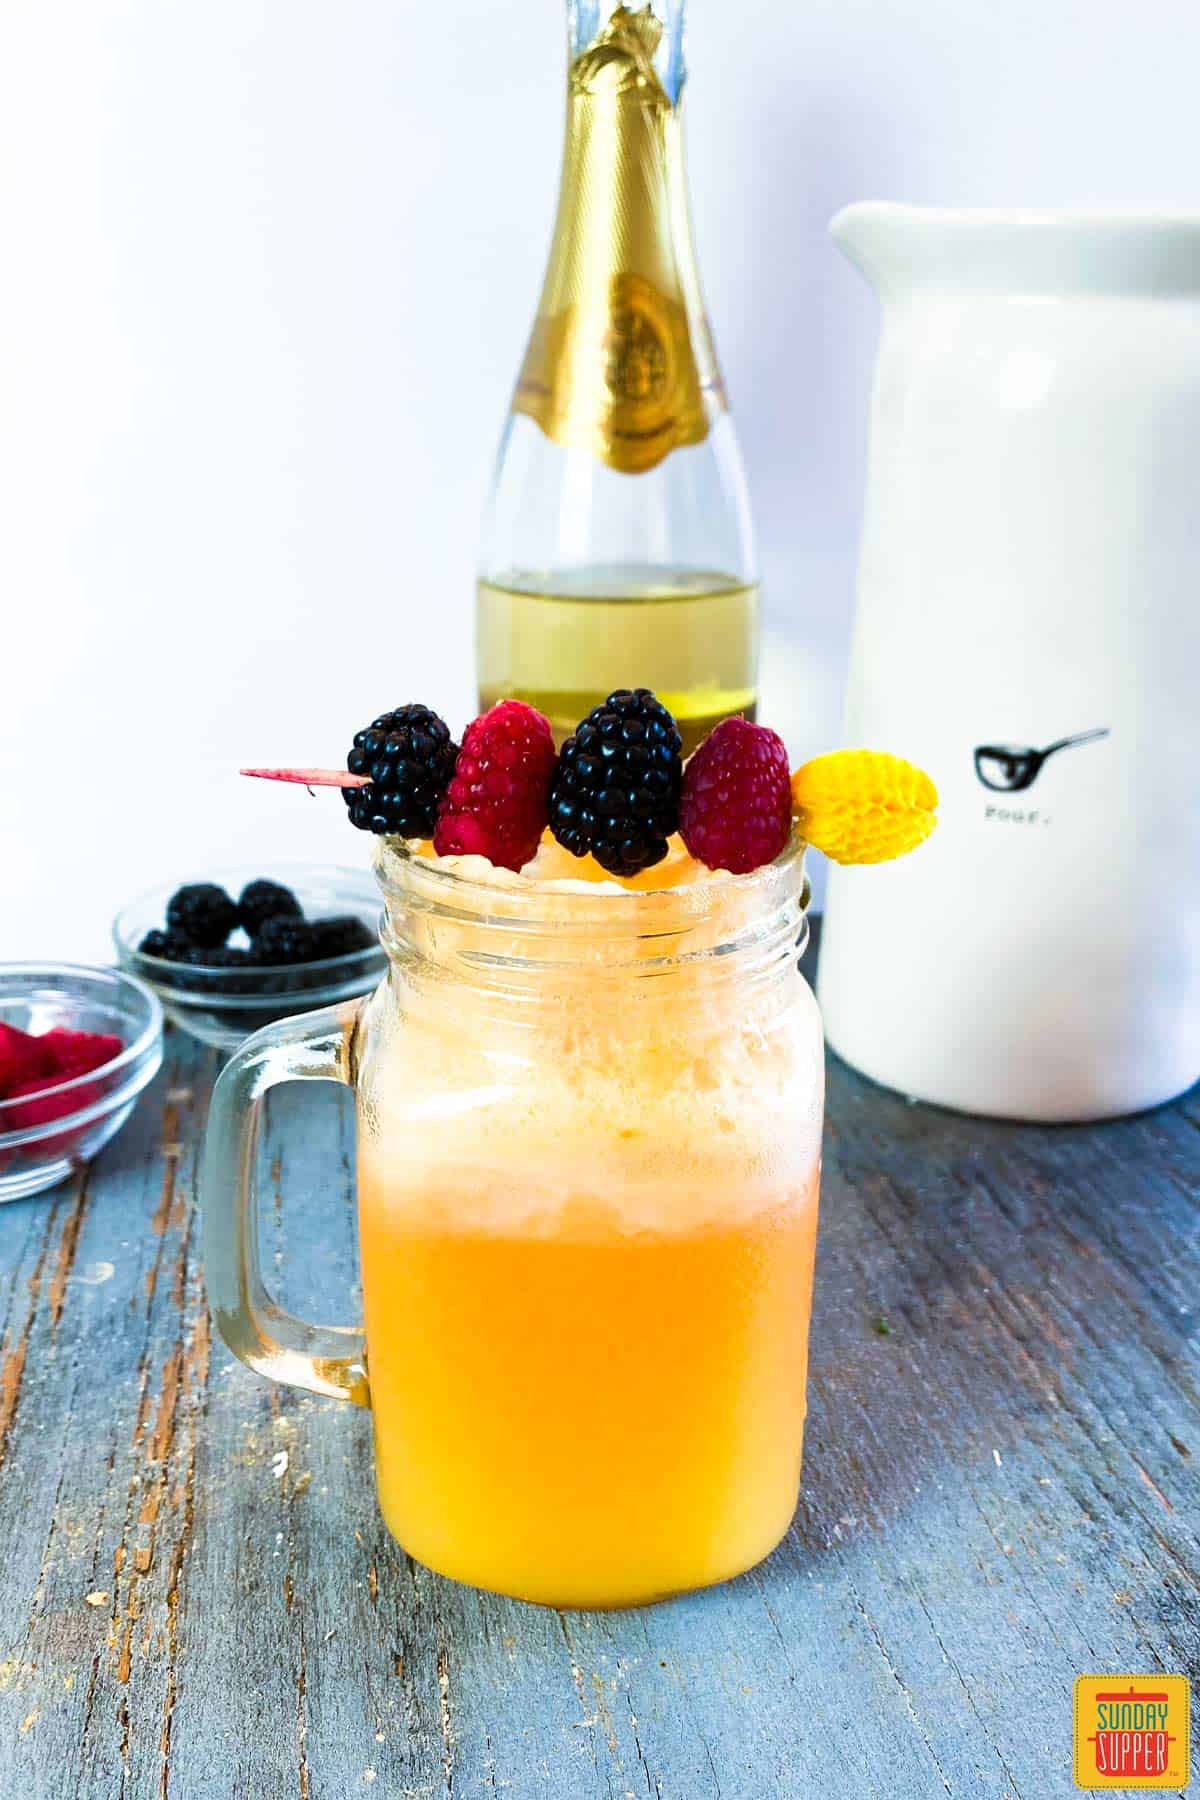 Orange mimosa in a glass jar in front of a champagne bottle and fresh berries in bowls